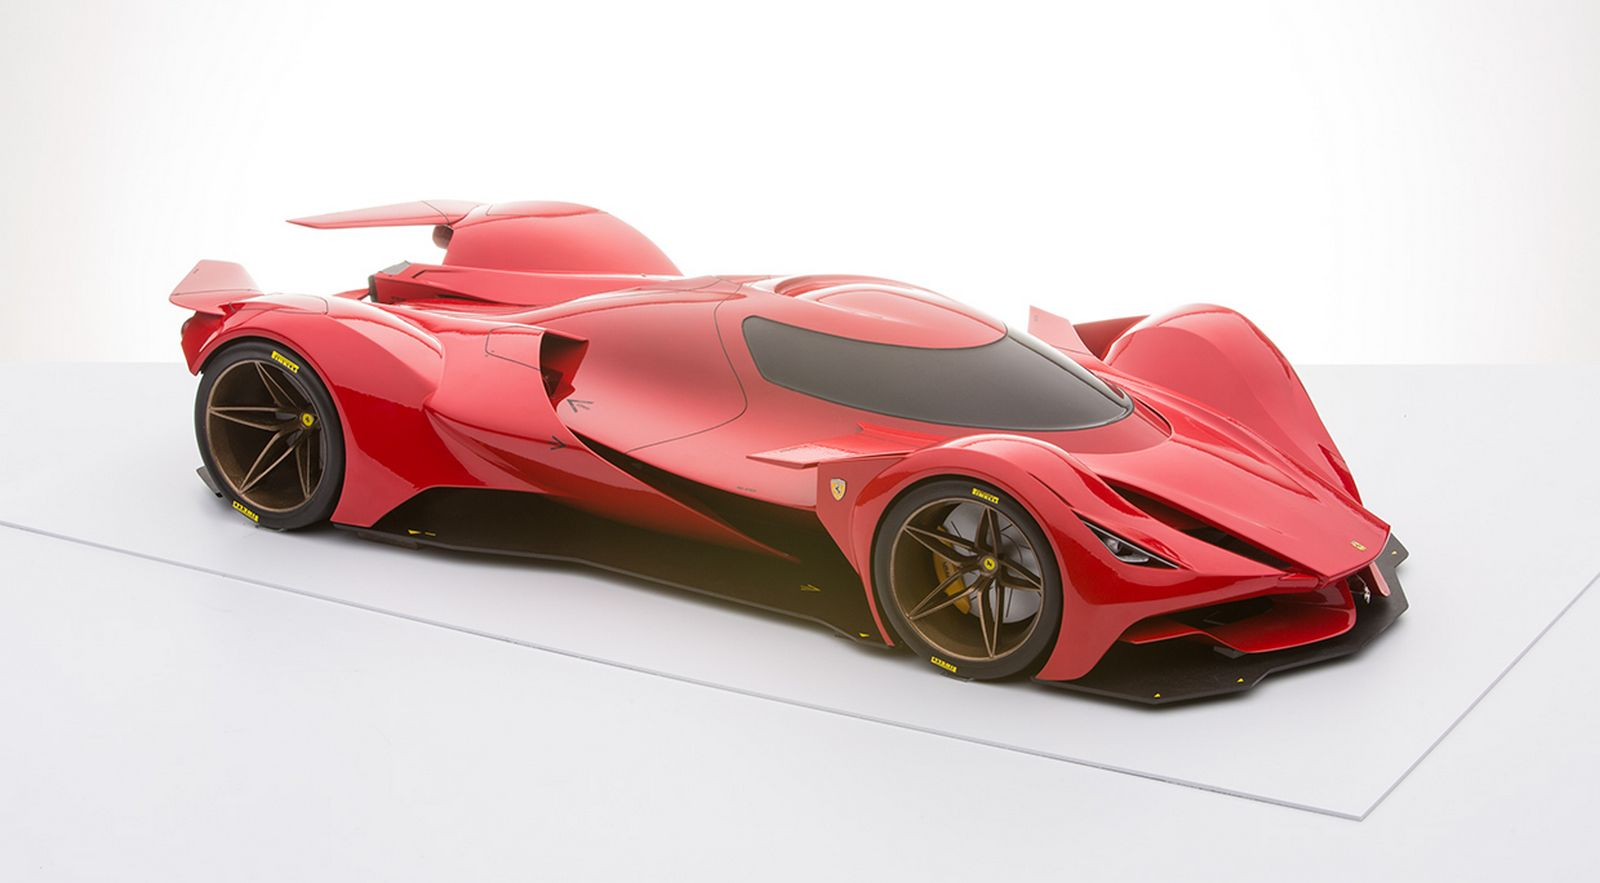 Futuristic Ferrari Le Mans Prototype Renderings Are